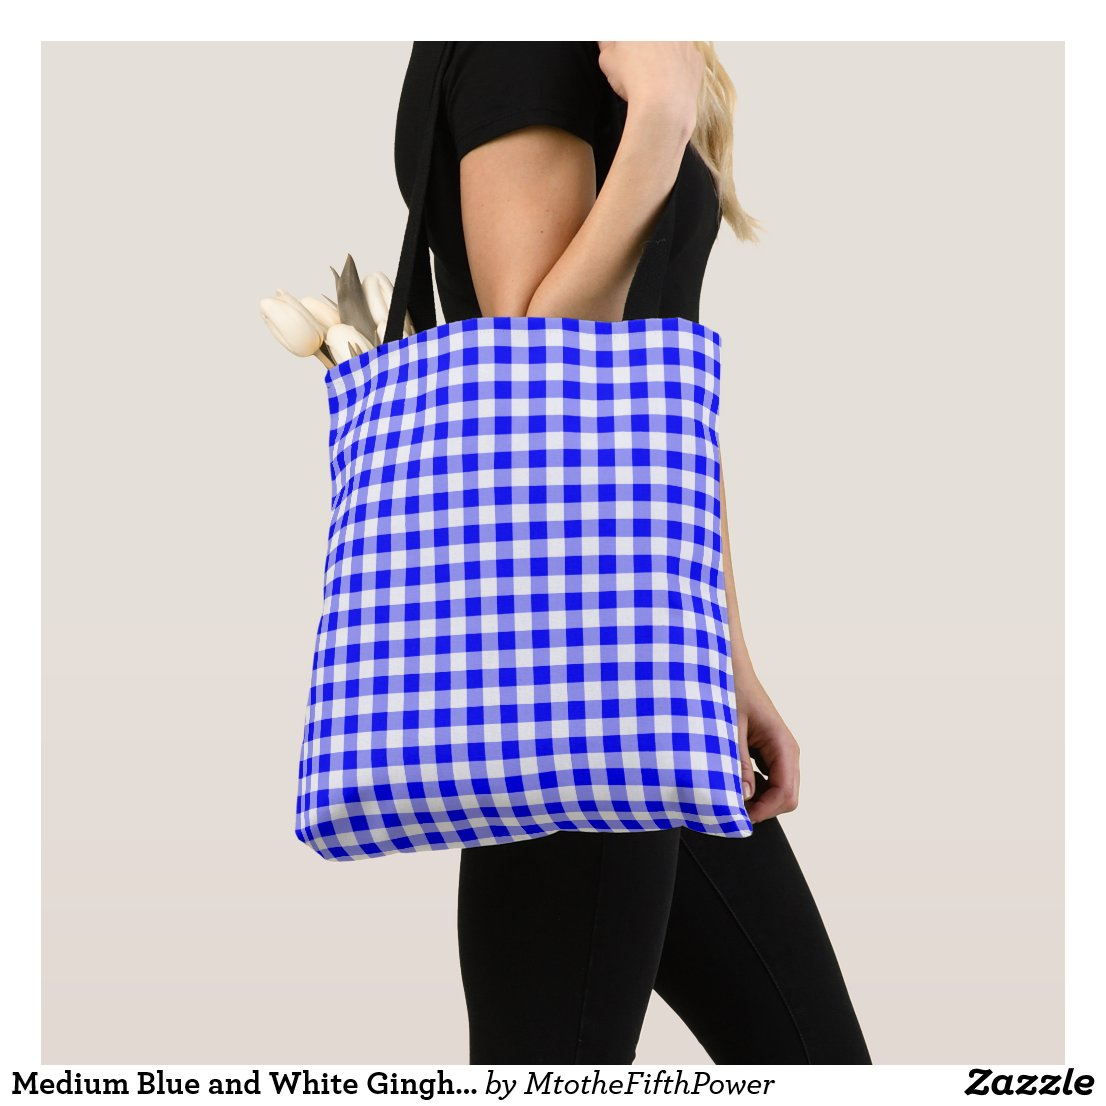 Medium Blue and White Gingham Check Tote Bag